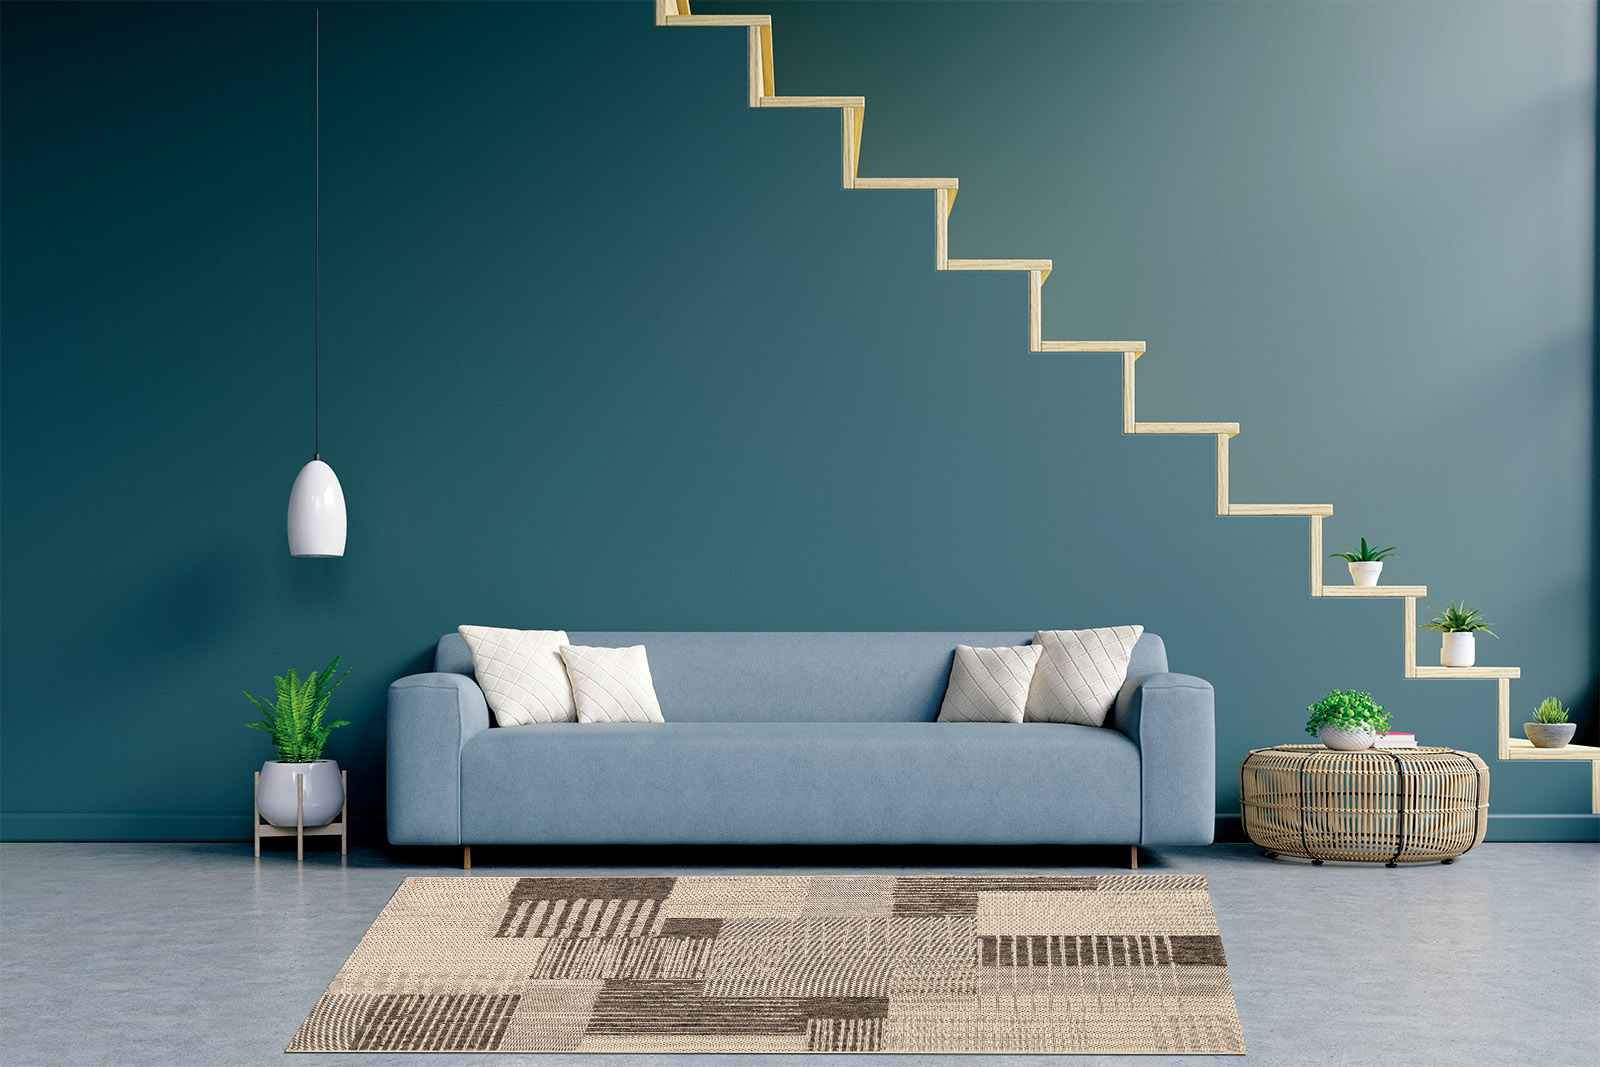 Modern living room interior with sofa and green plants,lamp,tabl